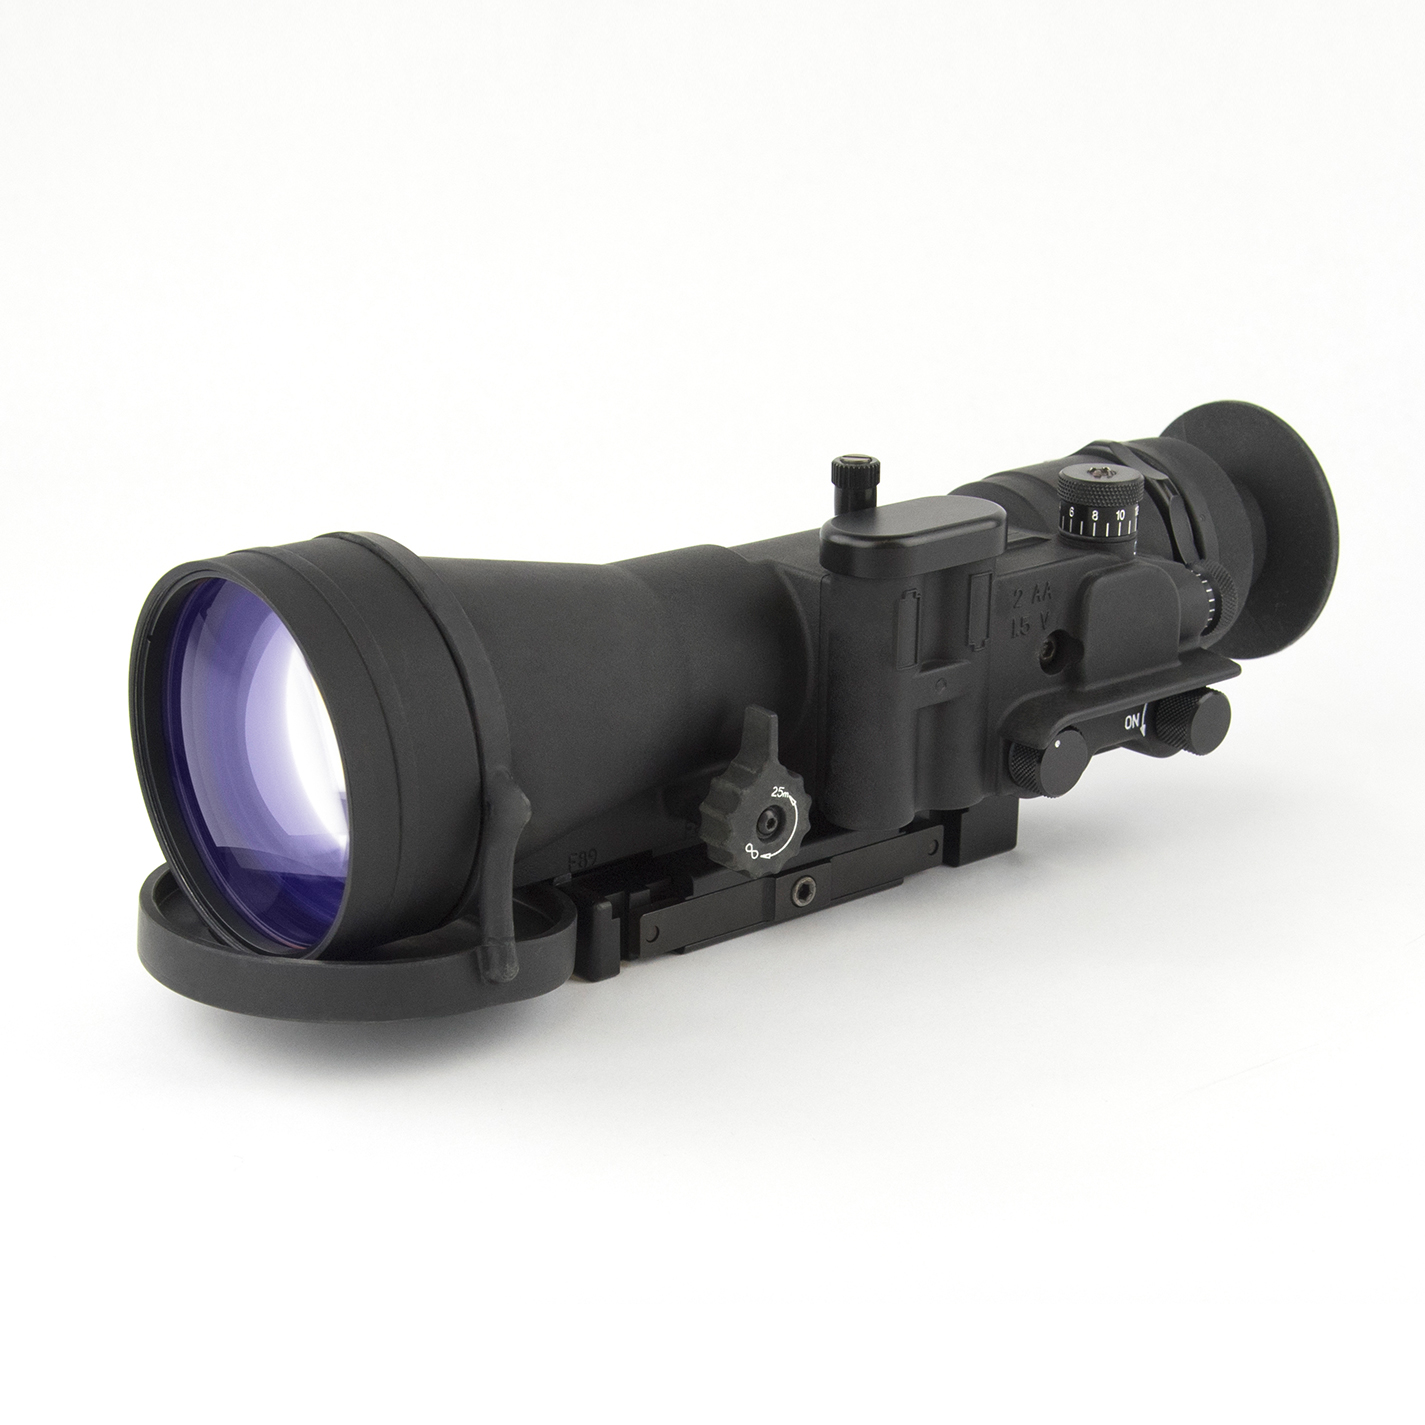 Talon Mk2 4X Night Vision Weapon Sight